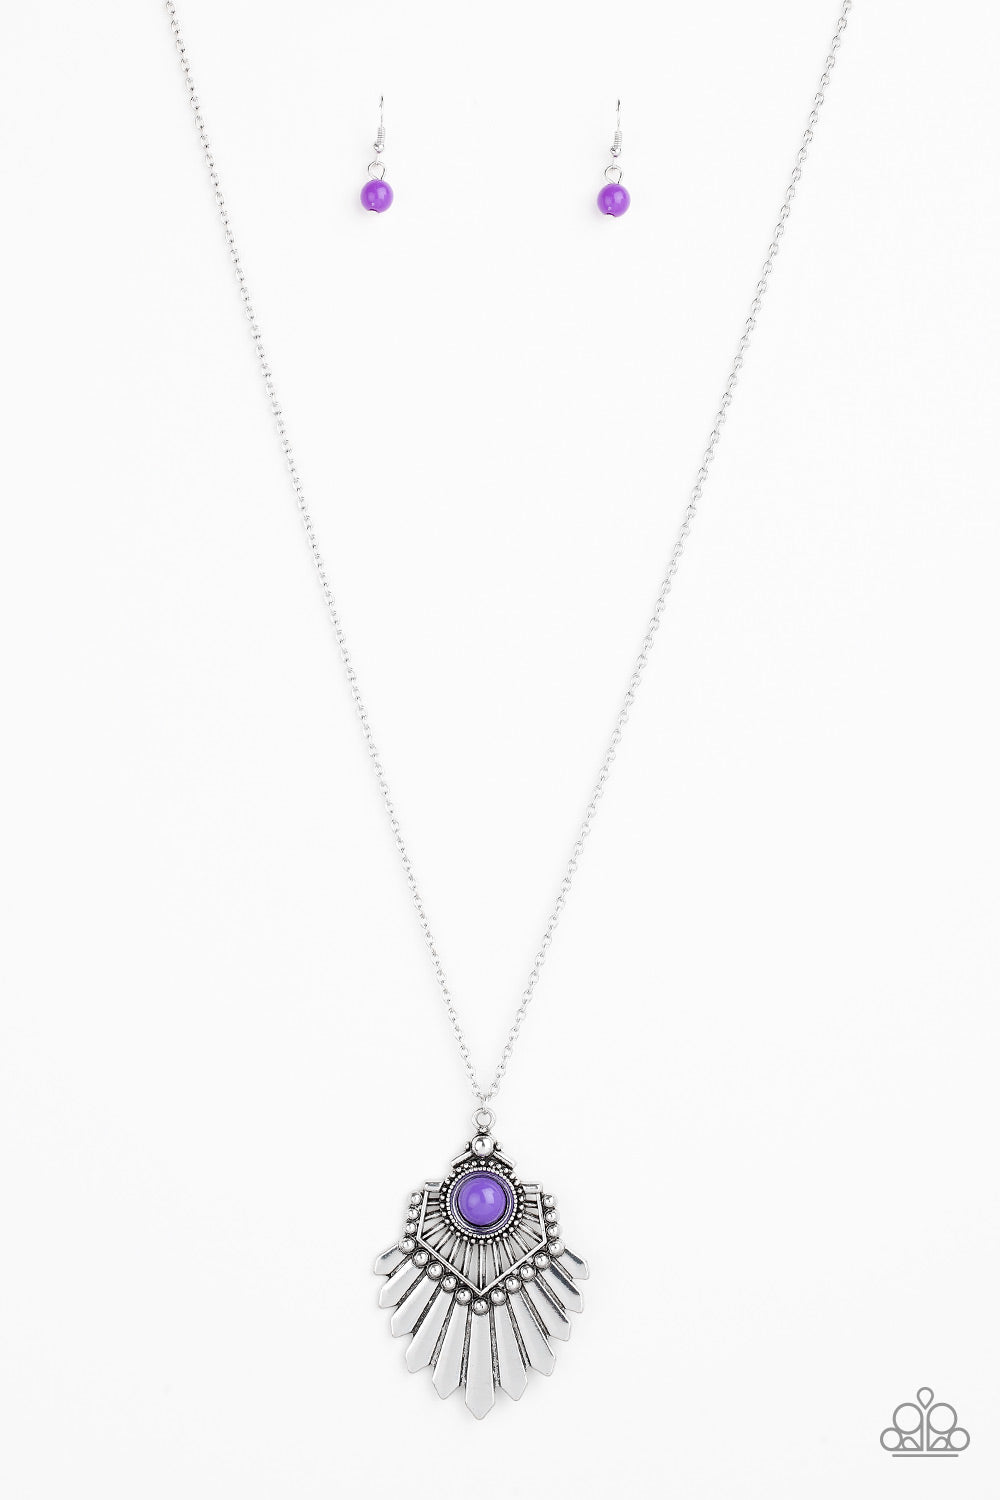 Paparazzi Accessories - Inde-PENDANT Idol - Purple Necklace Set - JMJ Jewelry Collection